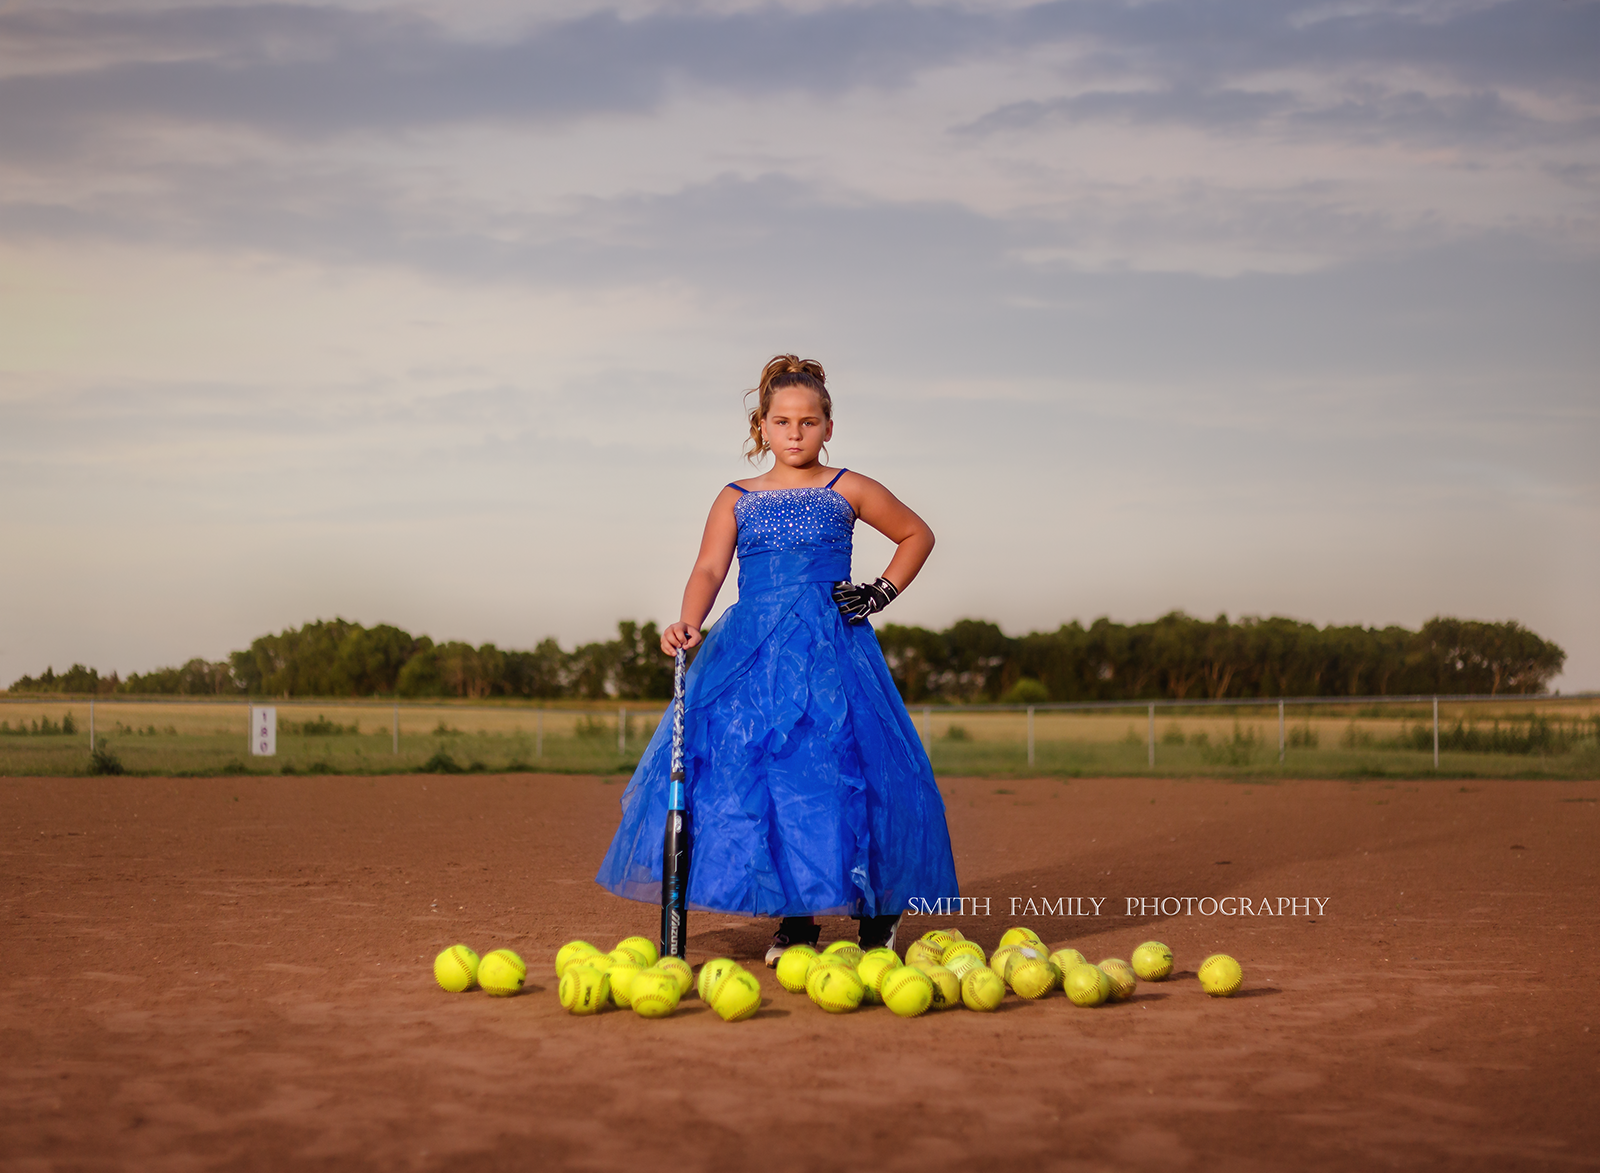 softball_princess_smith_family_photography